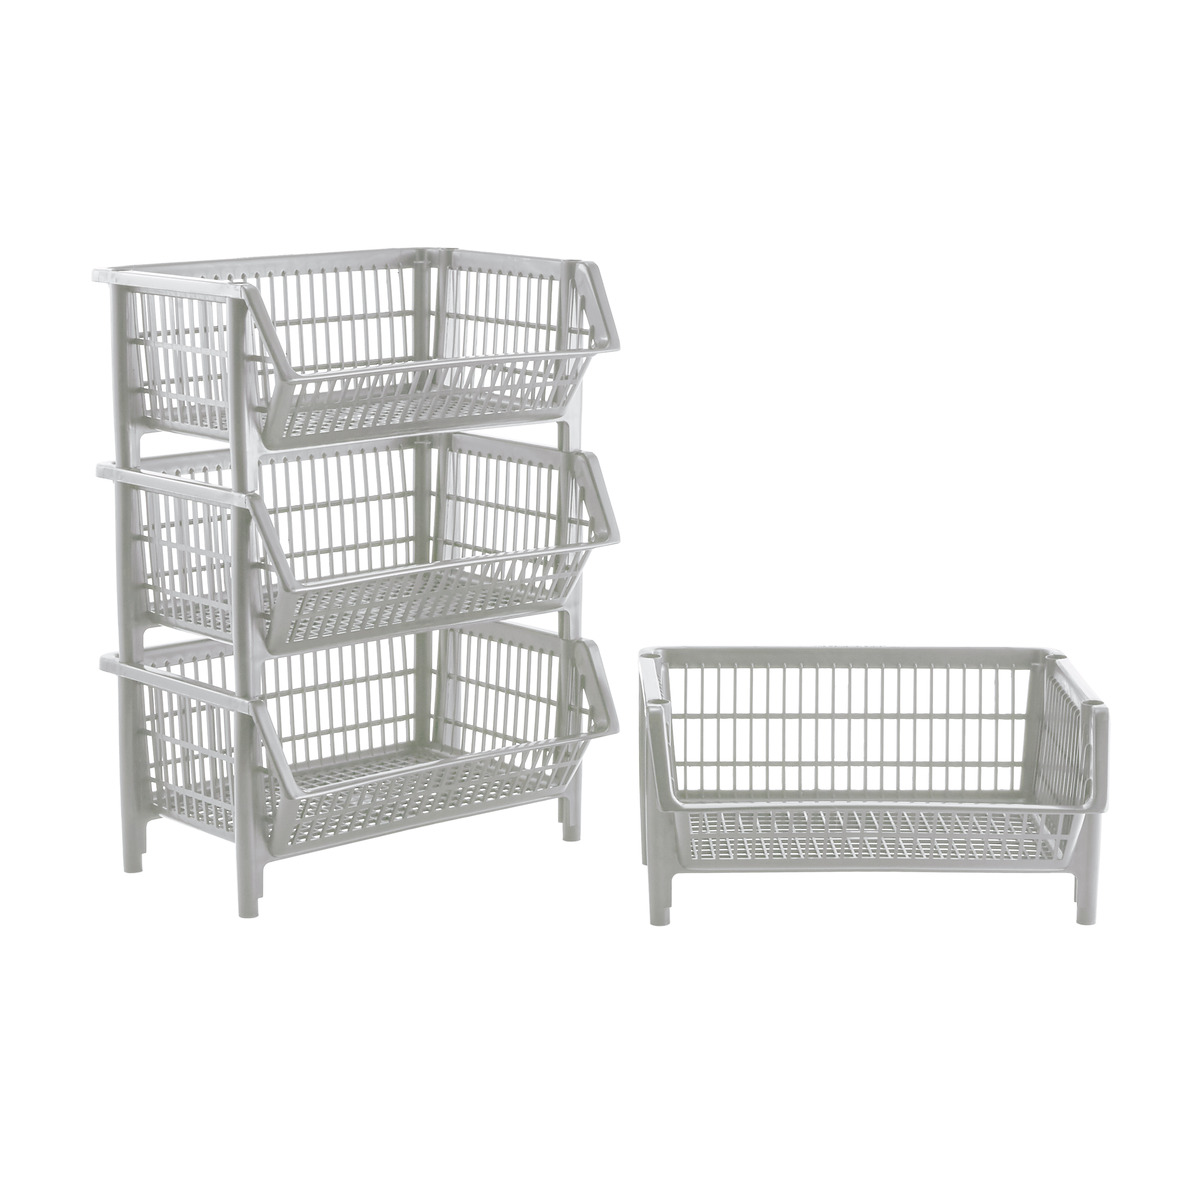 Our Light Grey Stackable Baskets Case of 4